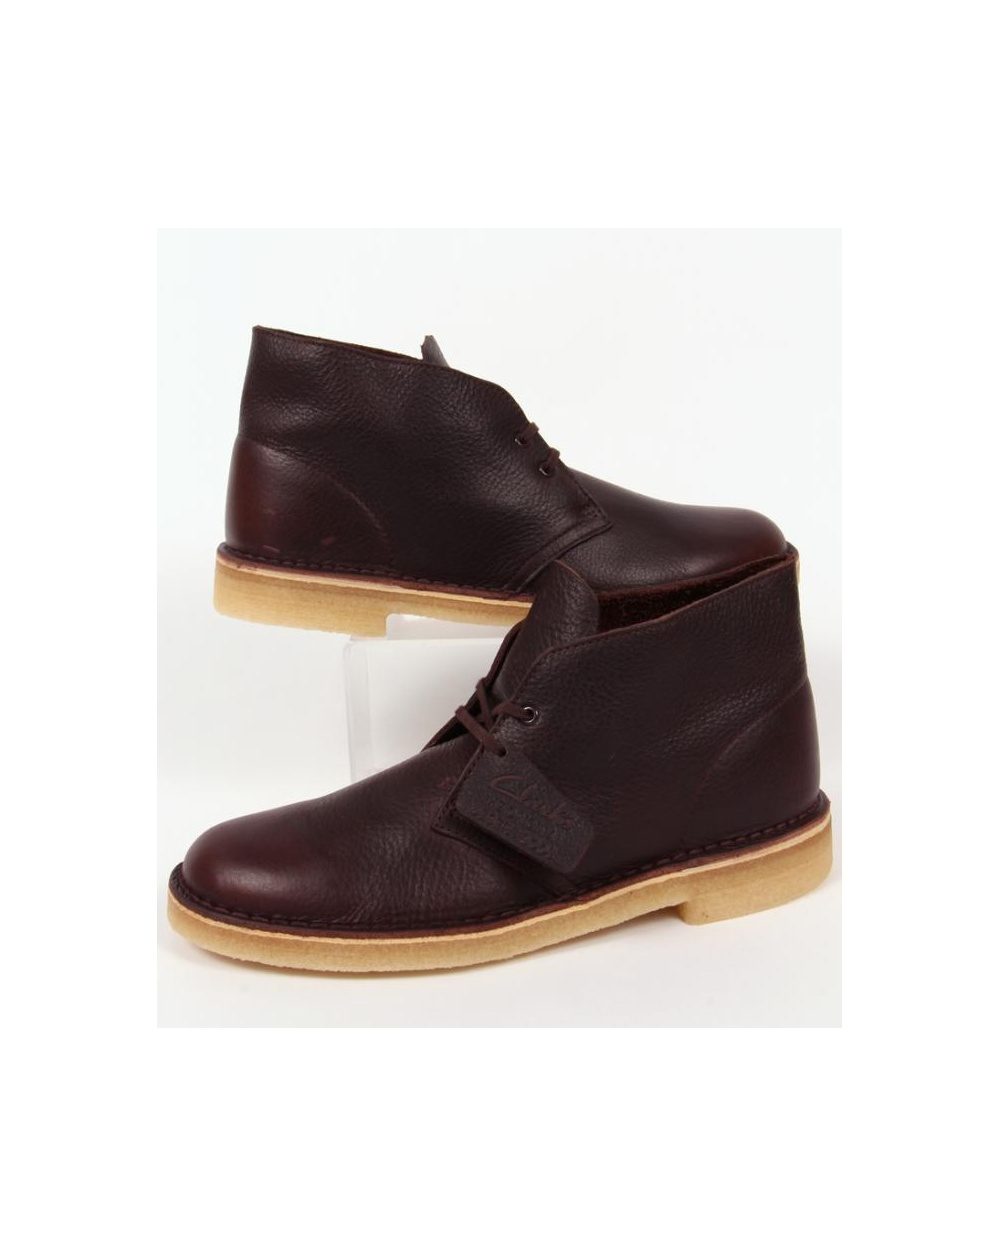 74eb1ab98f8b5 Clarks Originals Desert Boot In Leather Brown Tumbled Leather ...